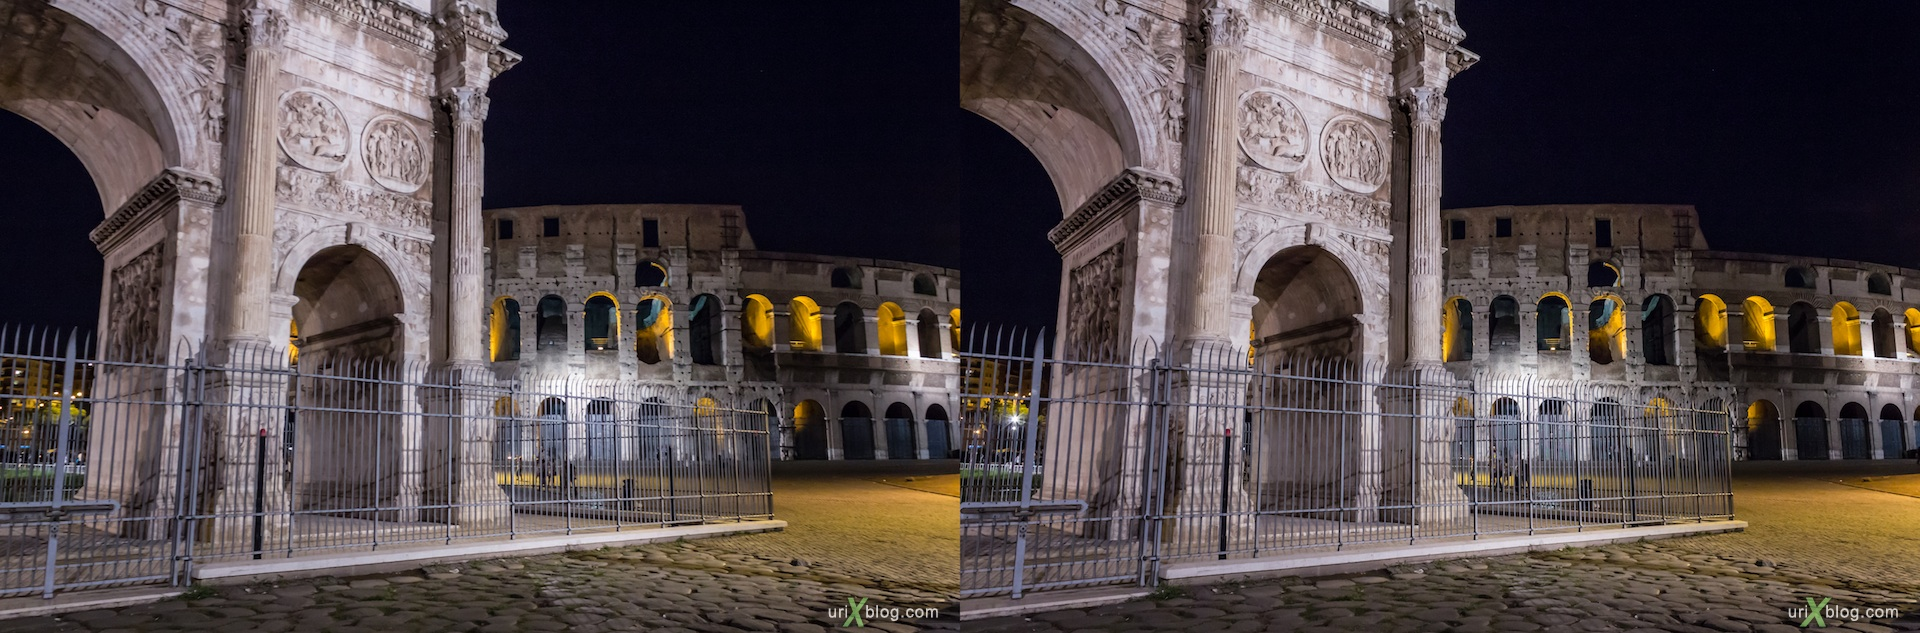 2012, Colosseum, Coliseum, Flavian Amphitheatre, Arch of Constantine, Rome, Italy, night, 3D, stereo pair, cross-eyed, crossview, cross view stereo pair